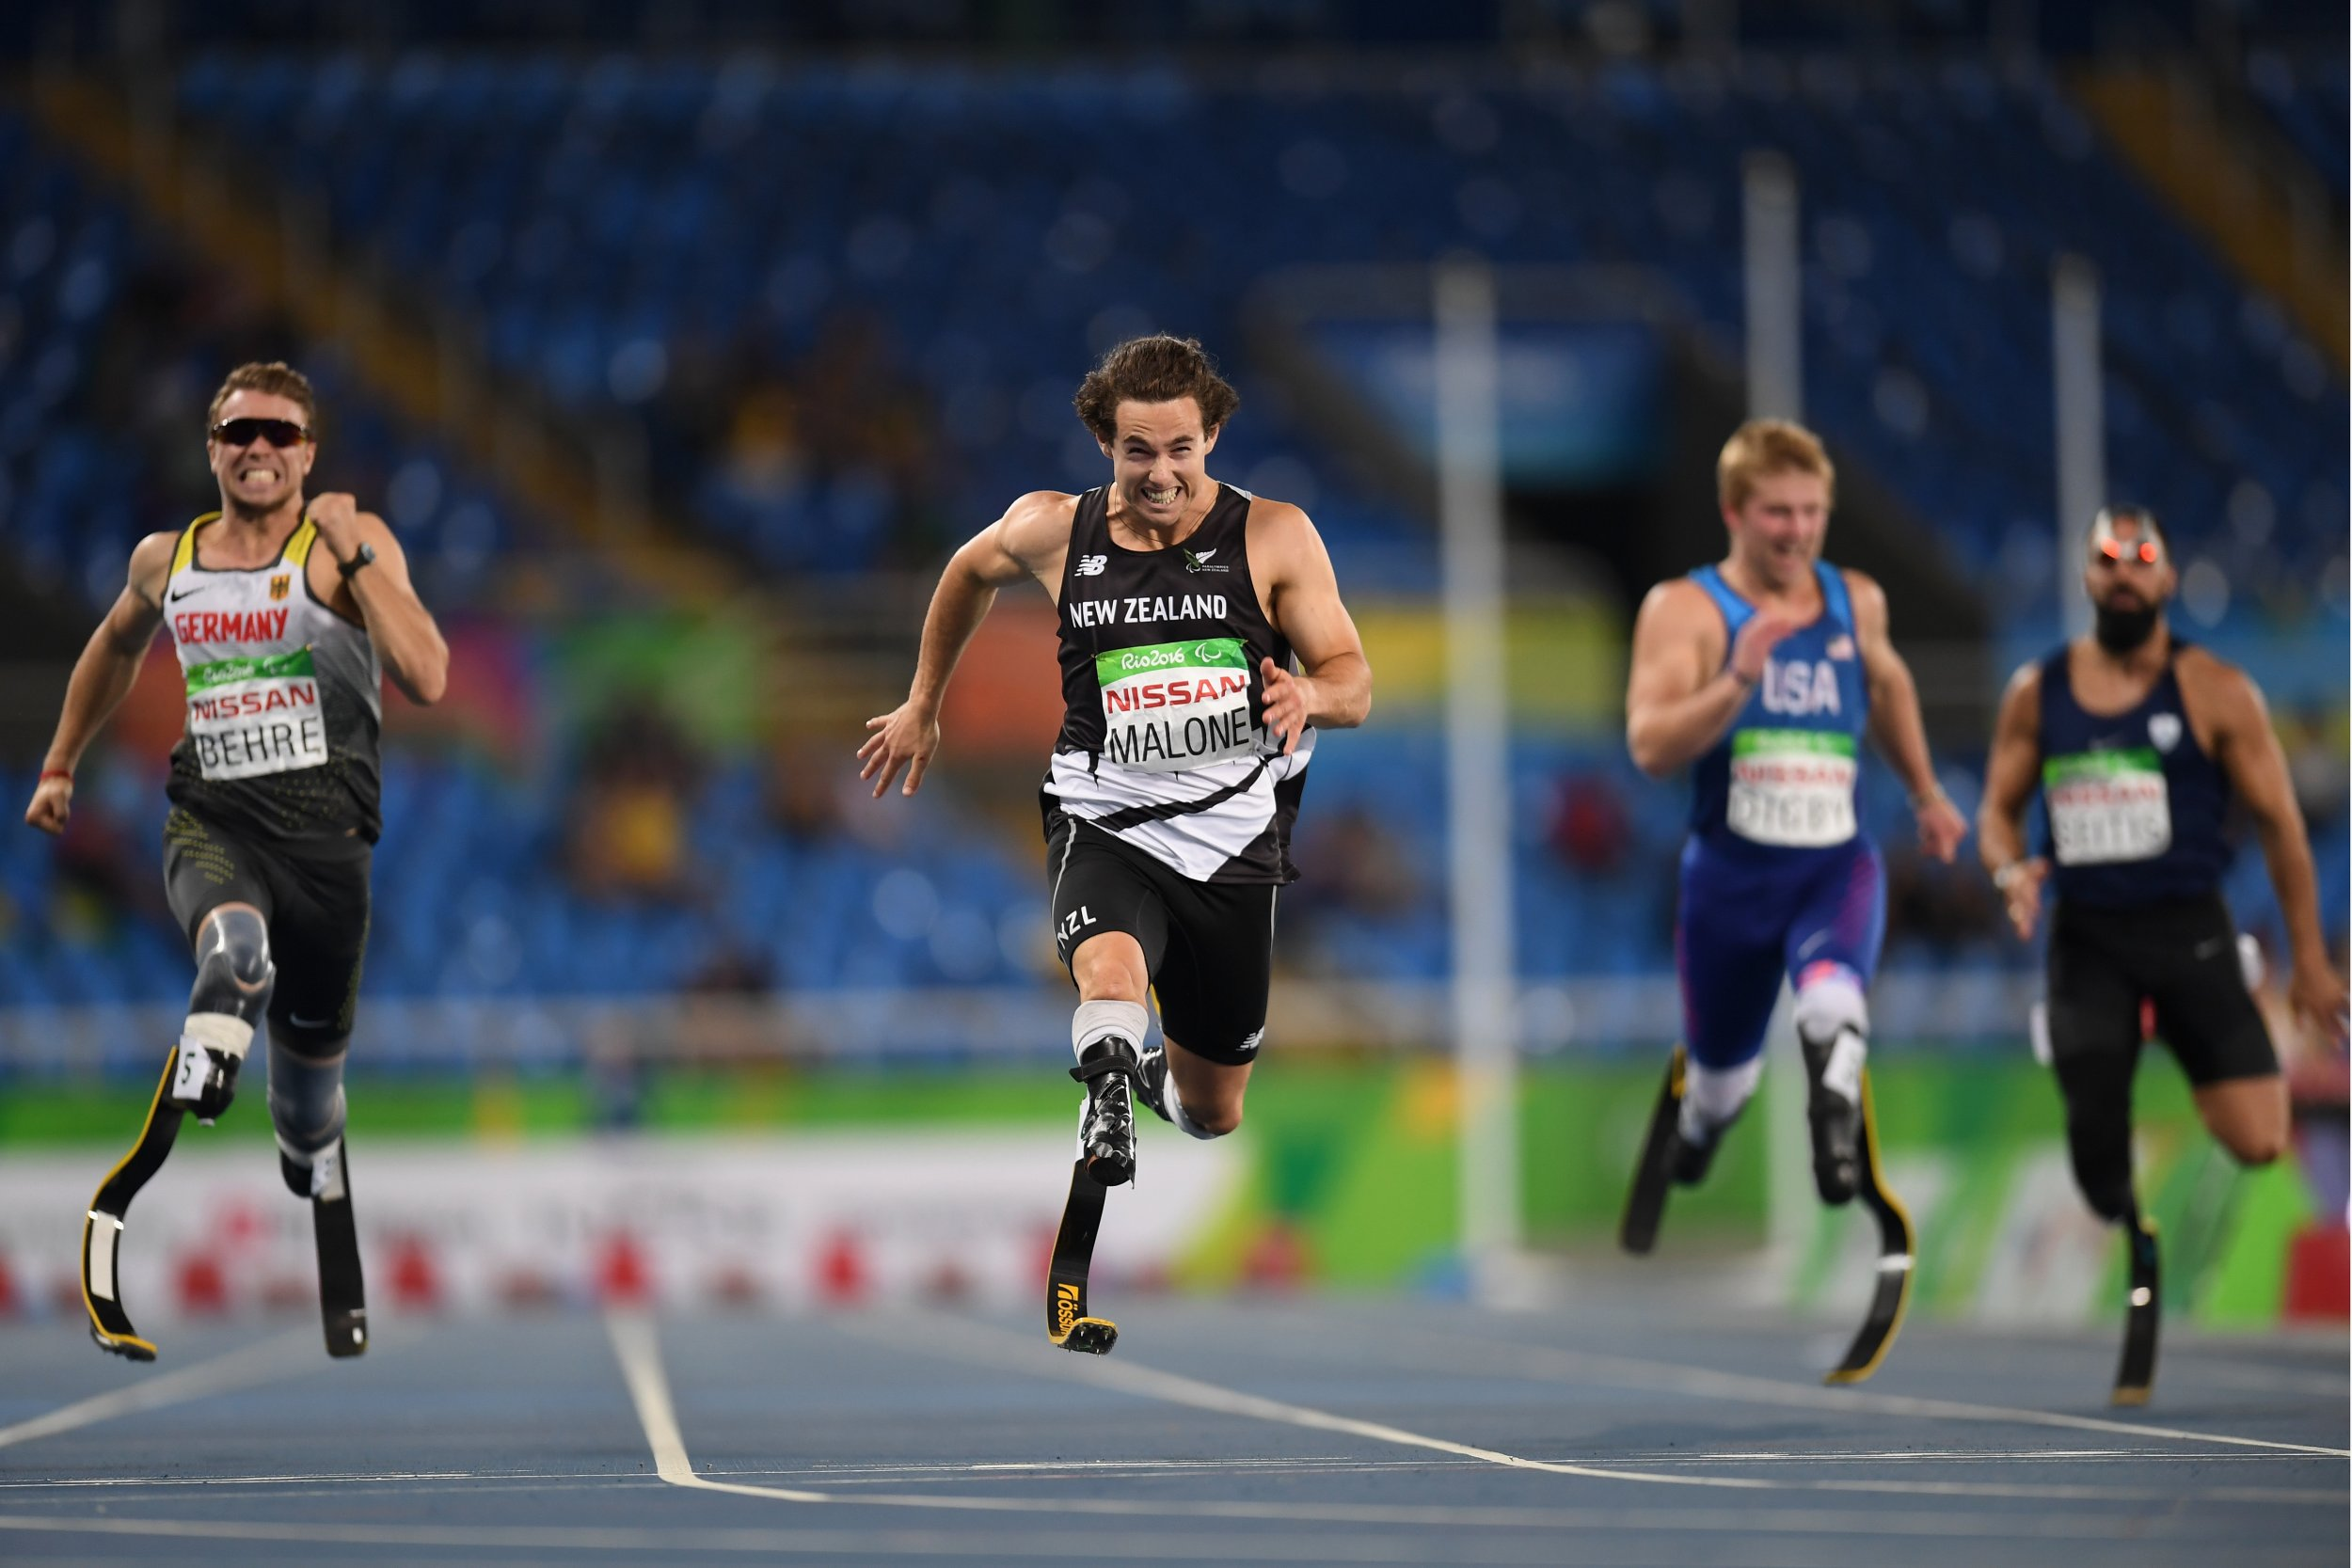 New Zealand Paralympian Liam Malone, center.